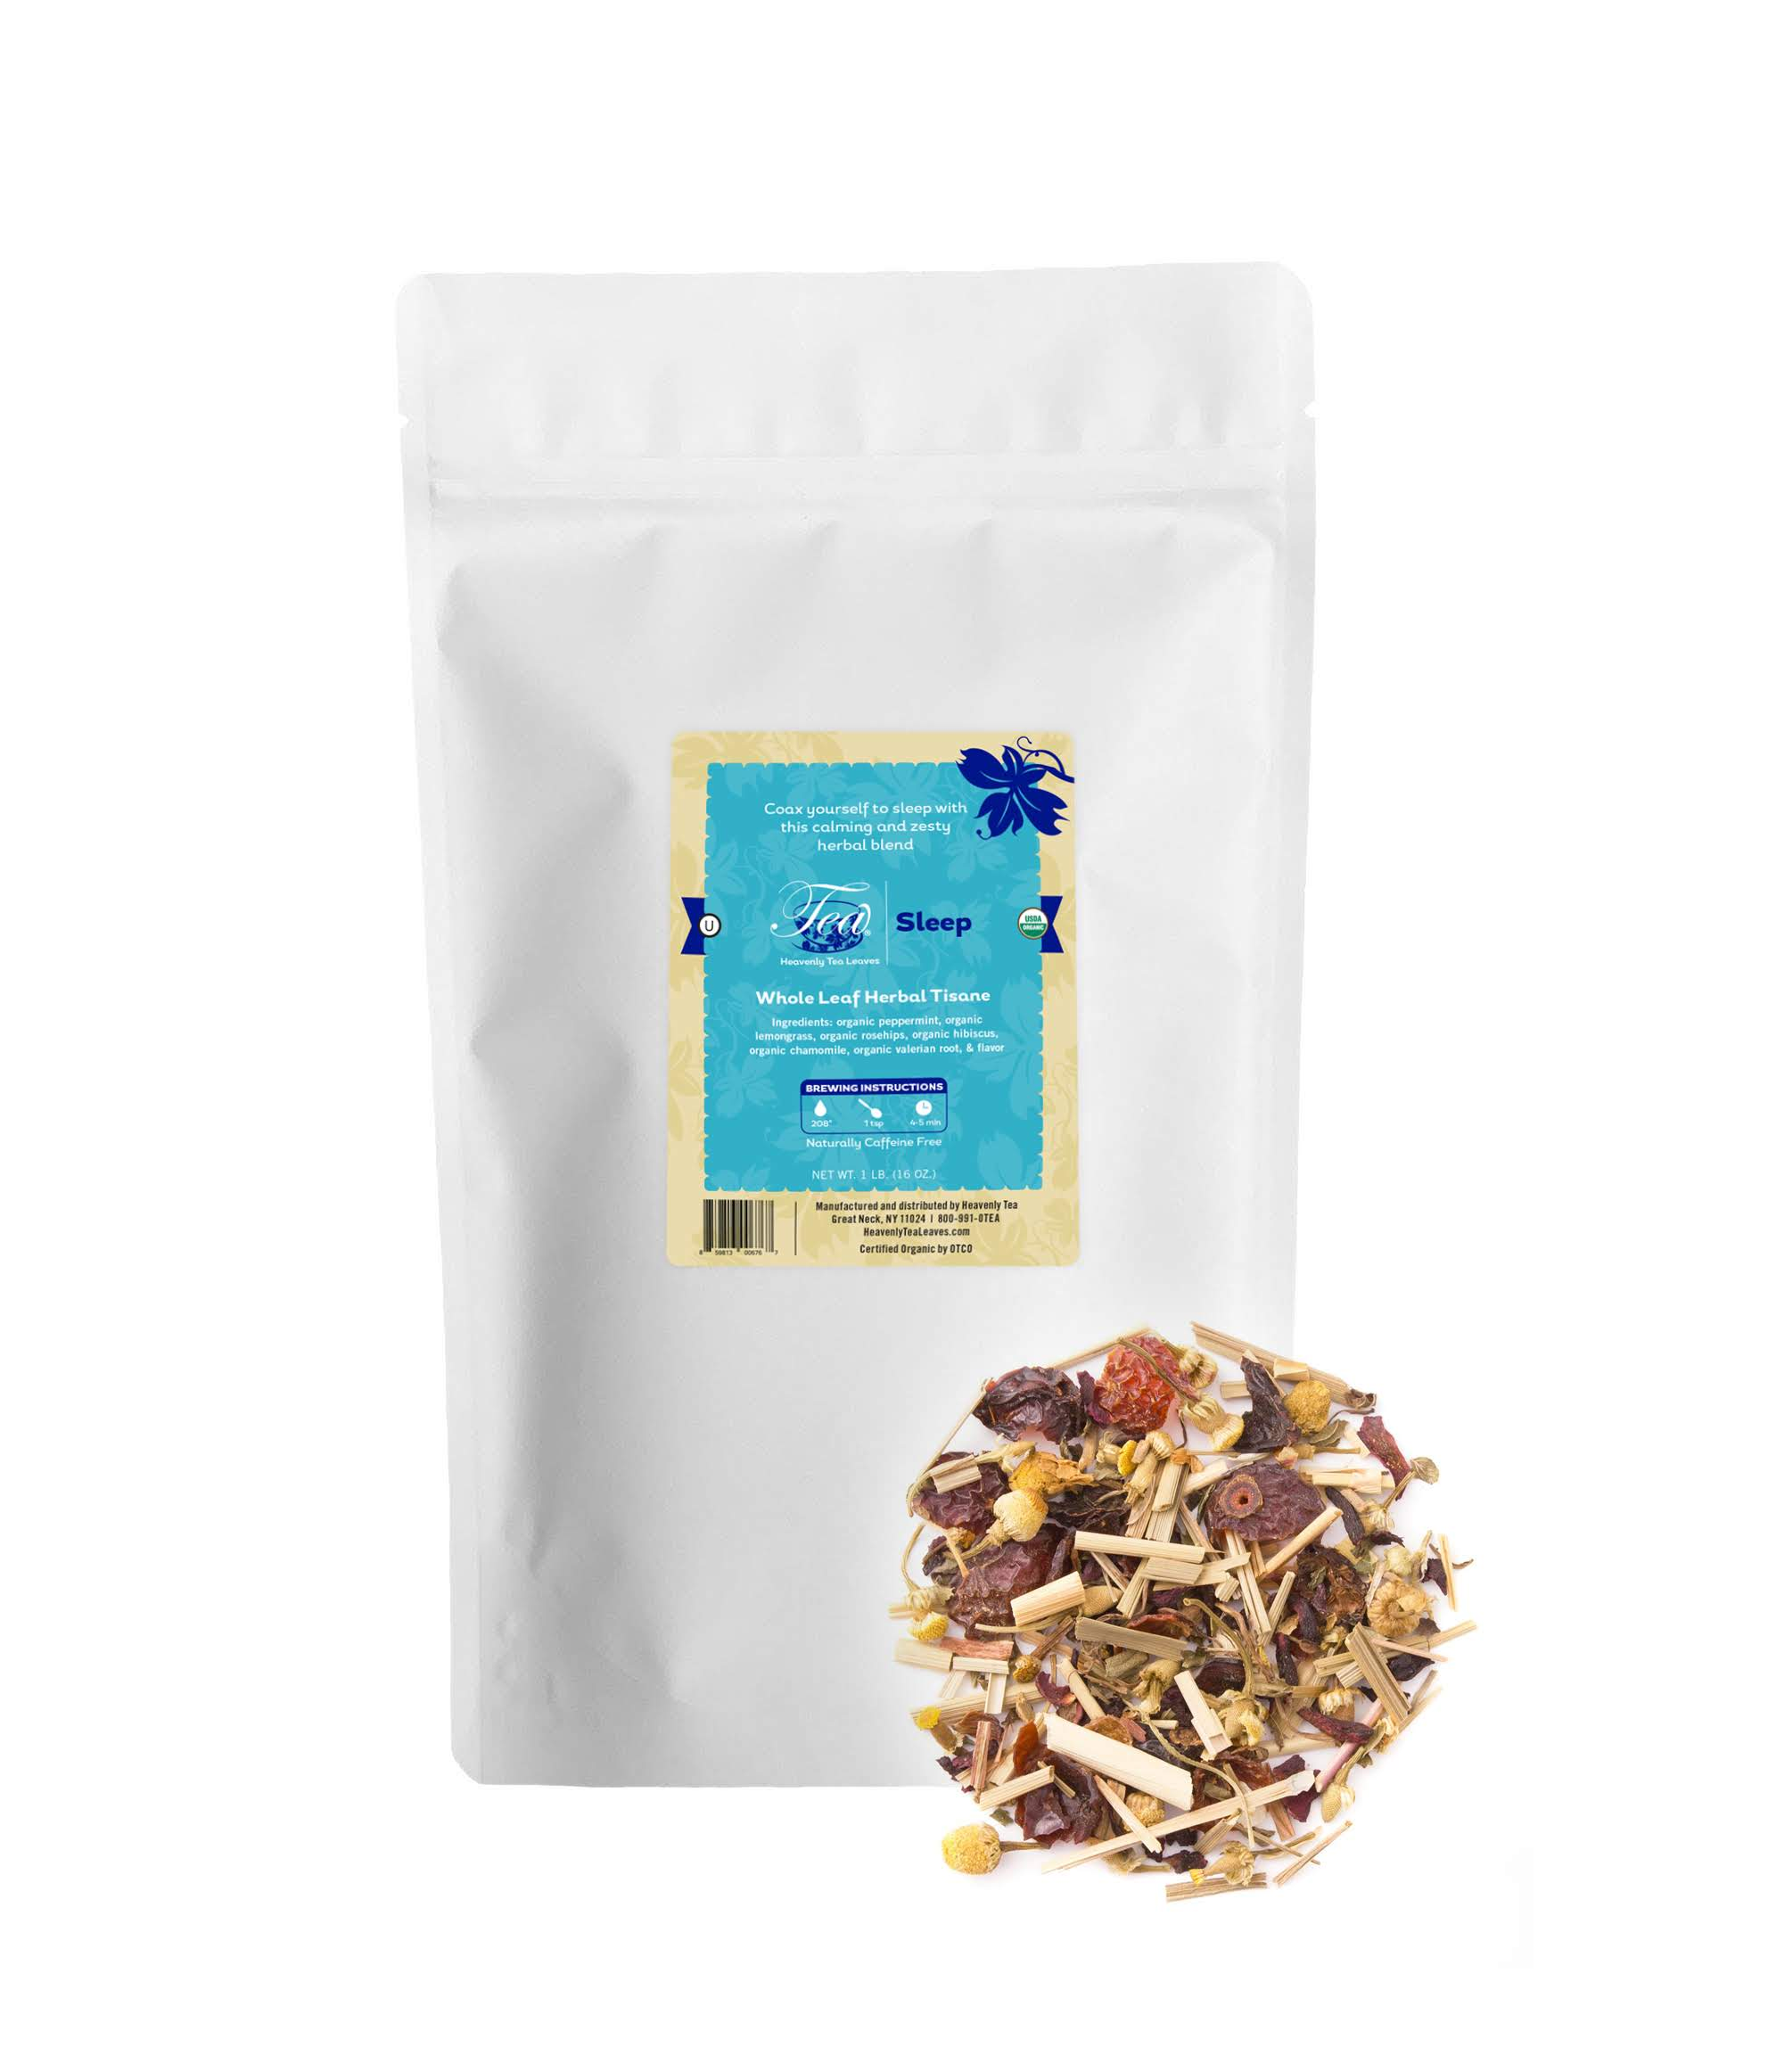 Bulk Loose Leaf Teas & Herbal Tisanes - Wholesale & Food Service Teas & Herbal Tisanes - Heavenly Tea Leaves